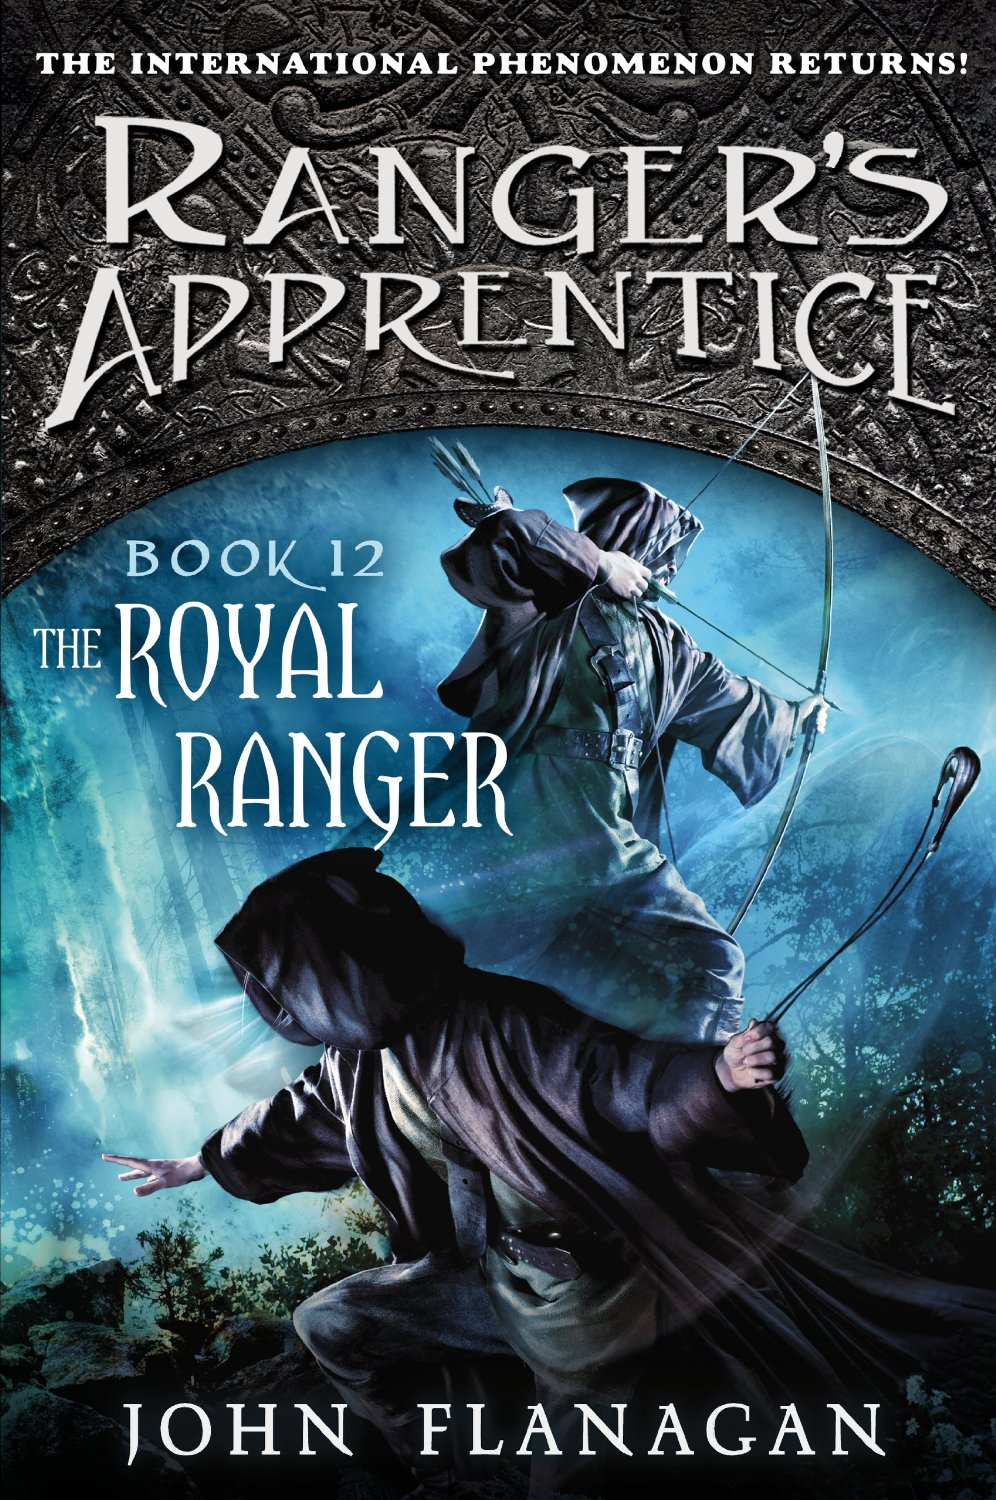 The Royal Ranger (Ranger's Apprentice, book 12) by John Flanagan